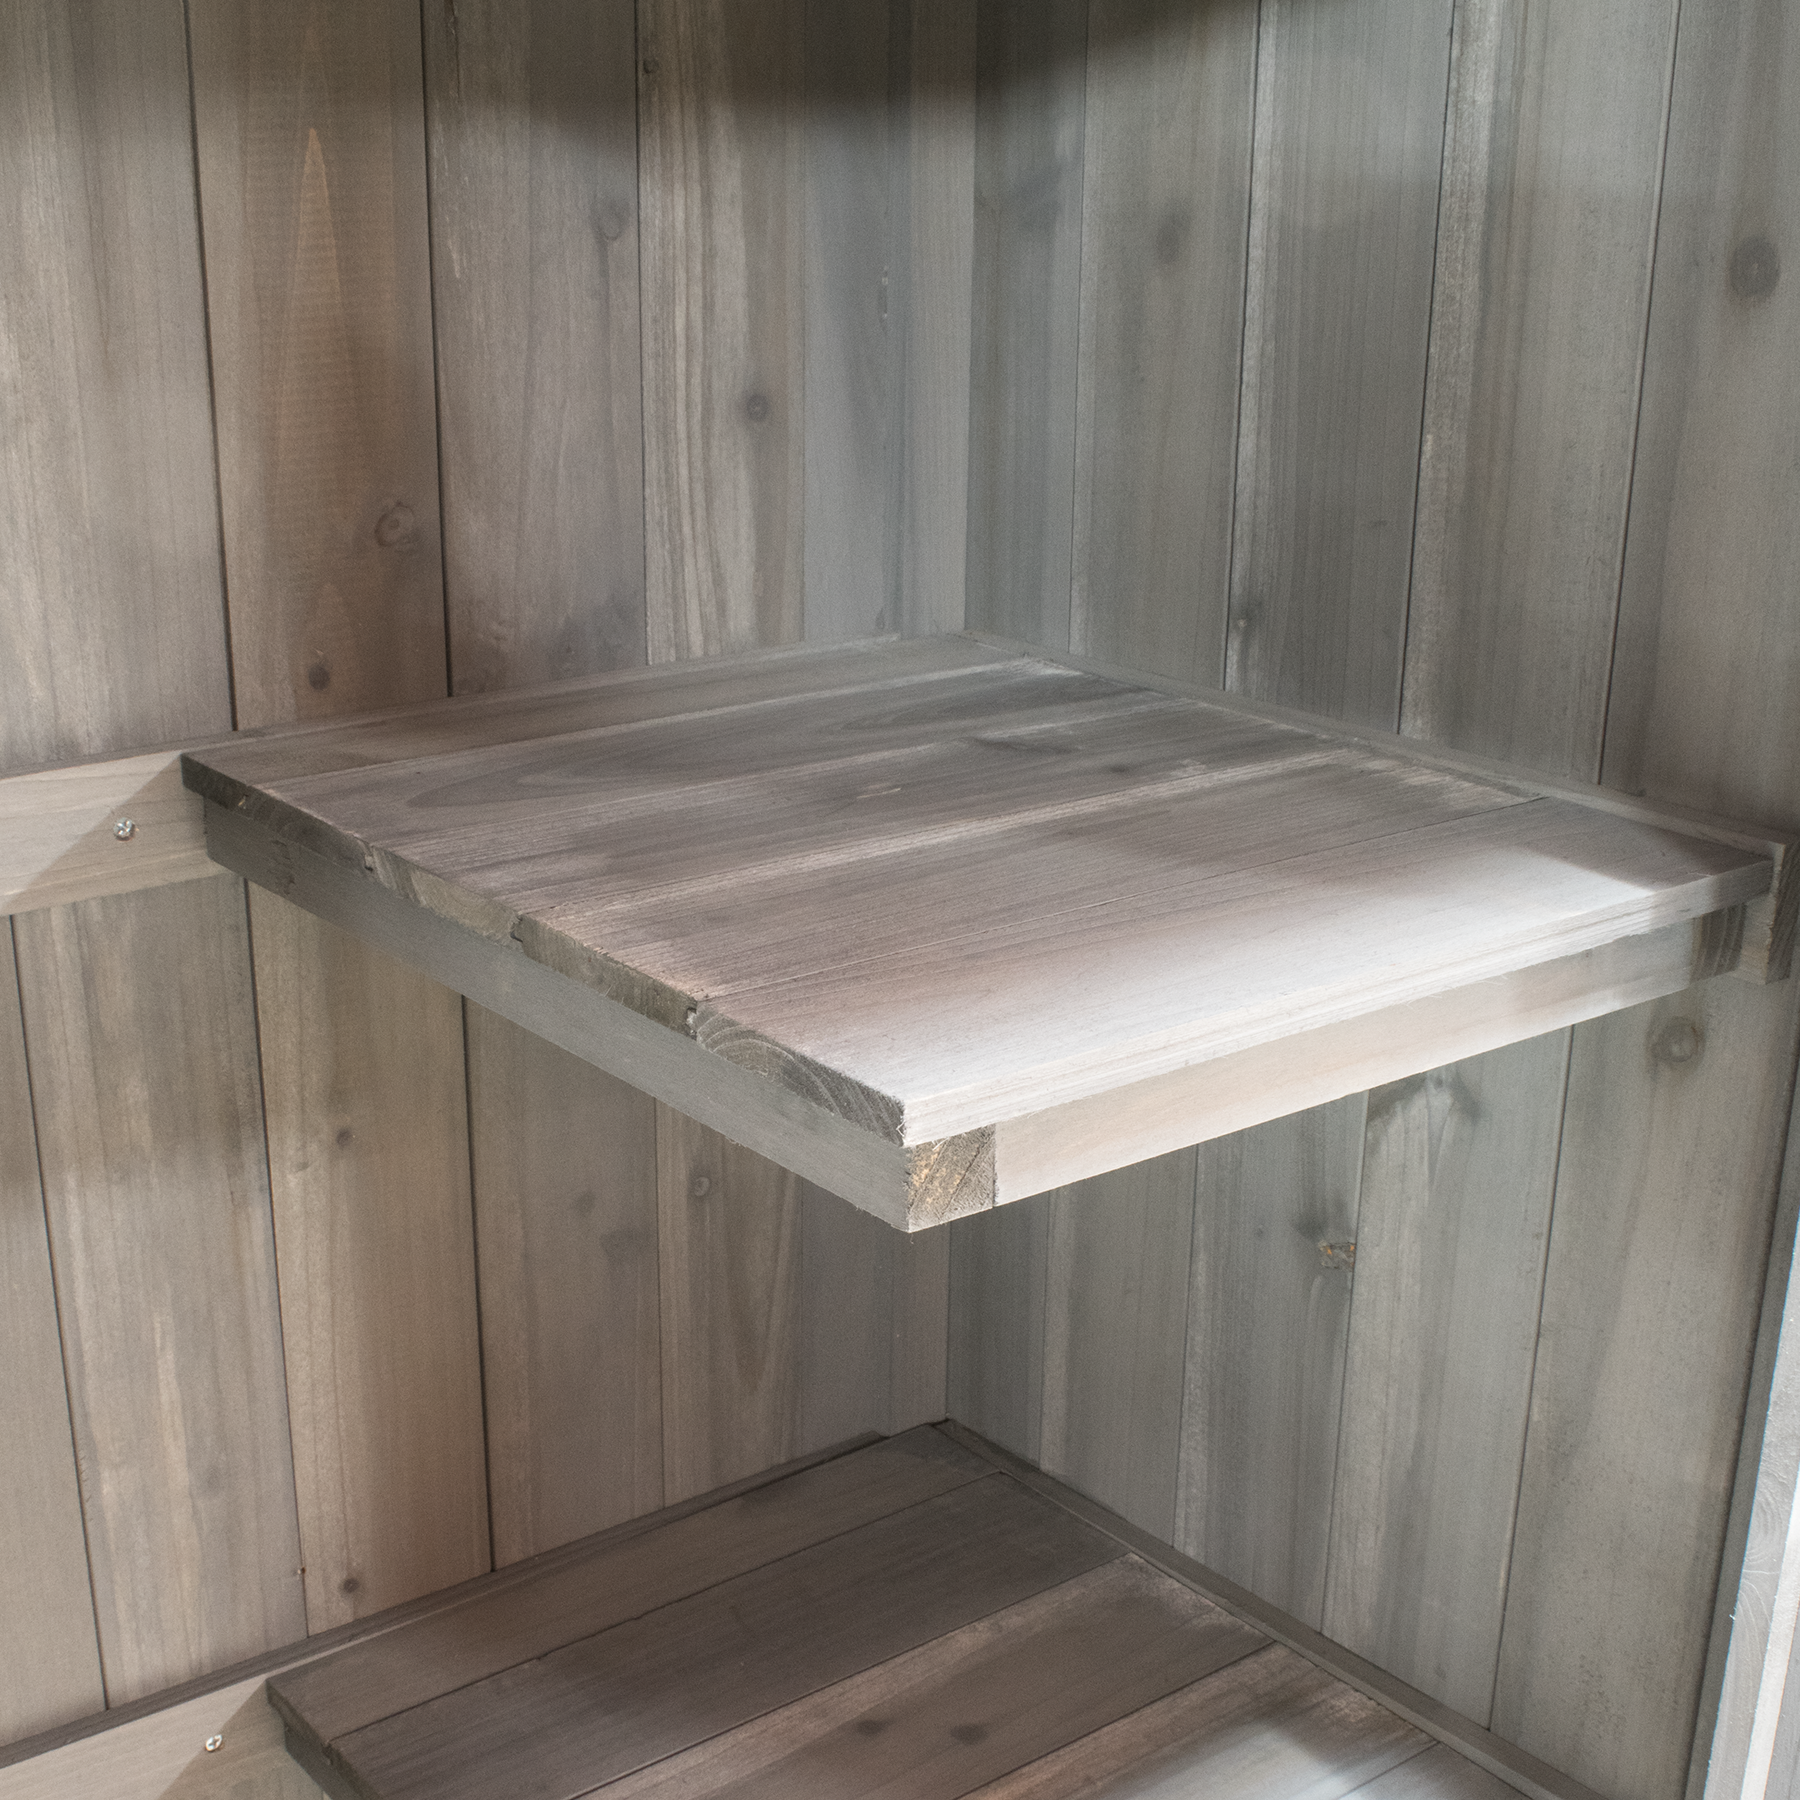 Details About Wooden Apex Roof Garden Storage Shed Cupboard Outdoor Tool  Cabinet Shelves